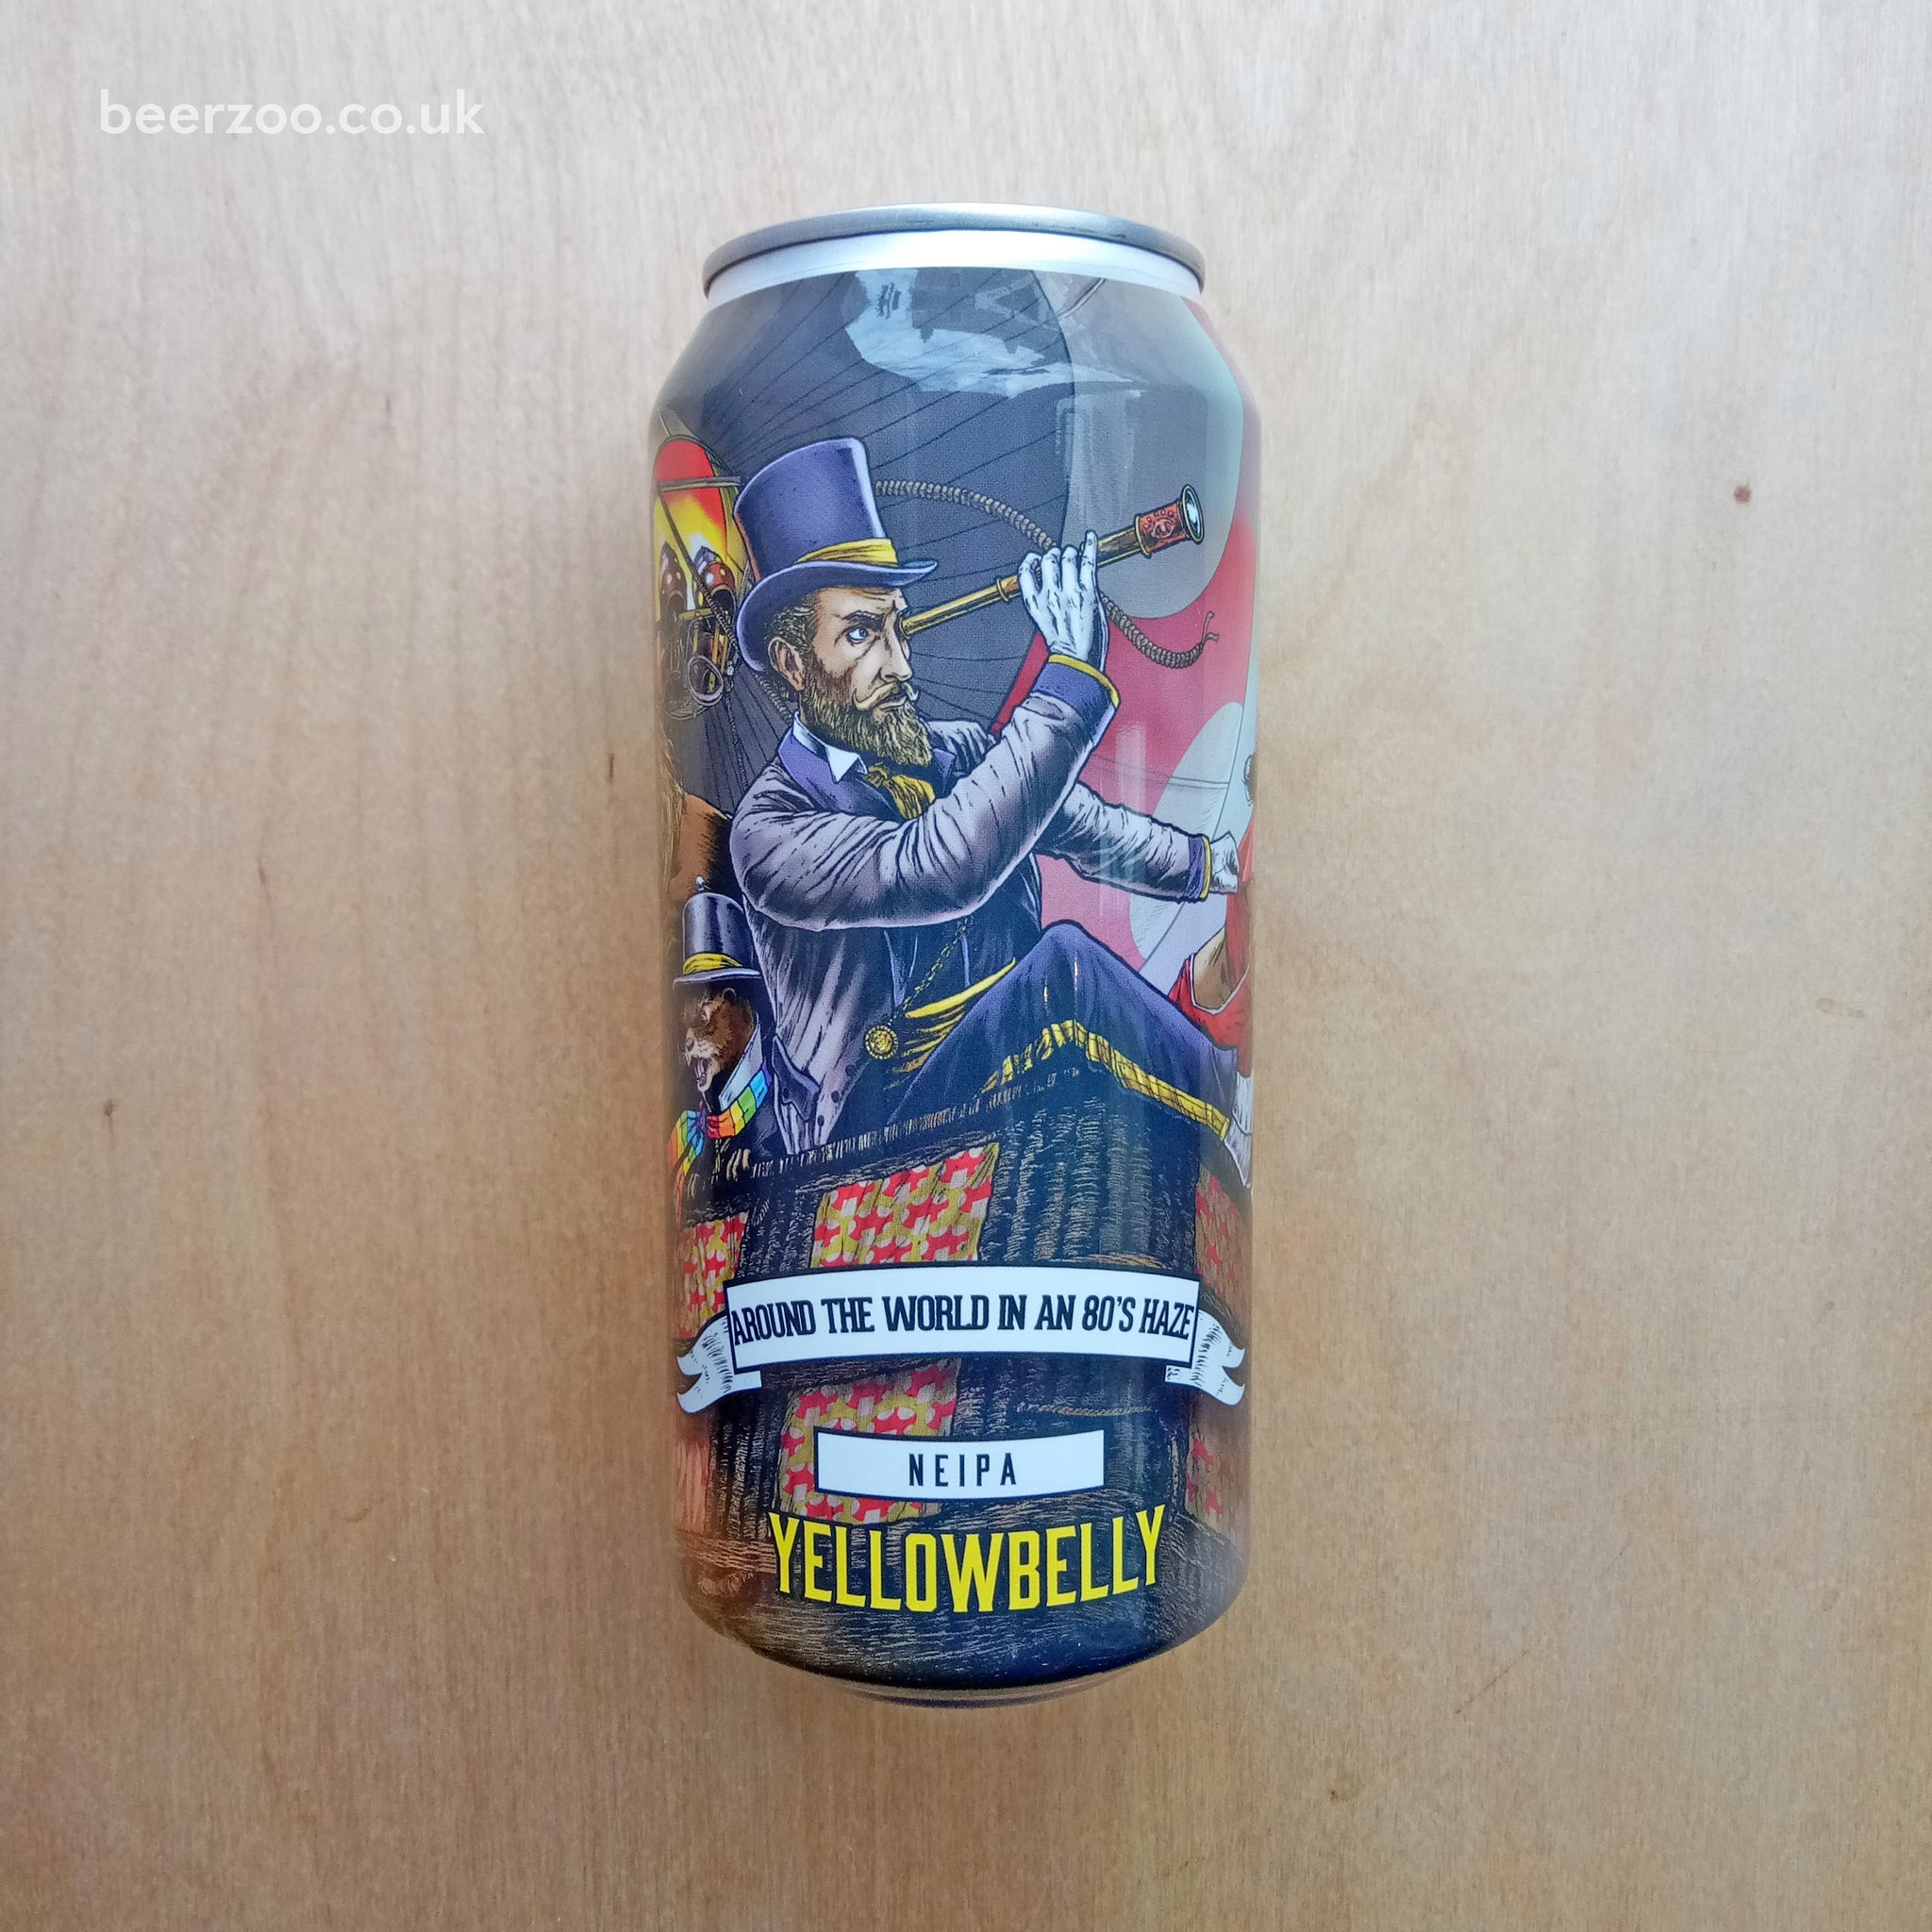 YellowBelly - Around The World In An 80's Haze 6.9% (440ml)